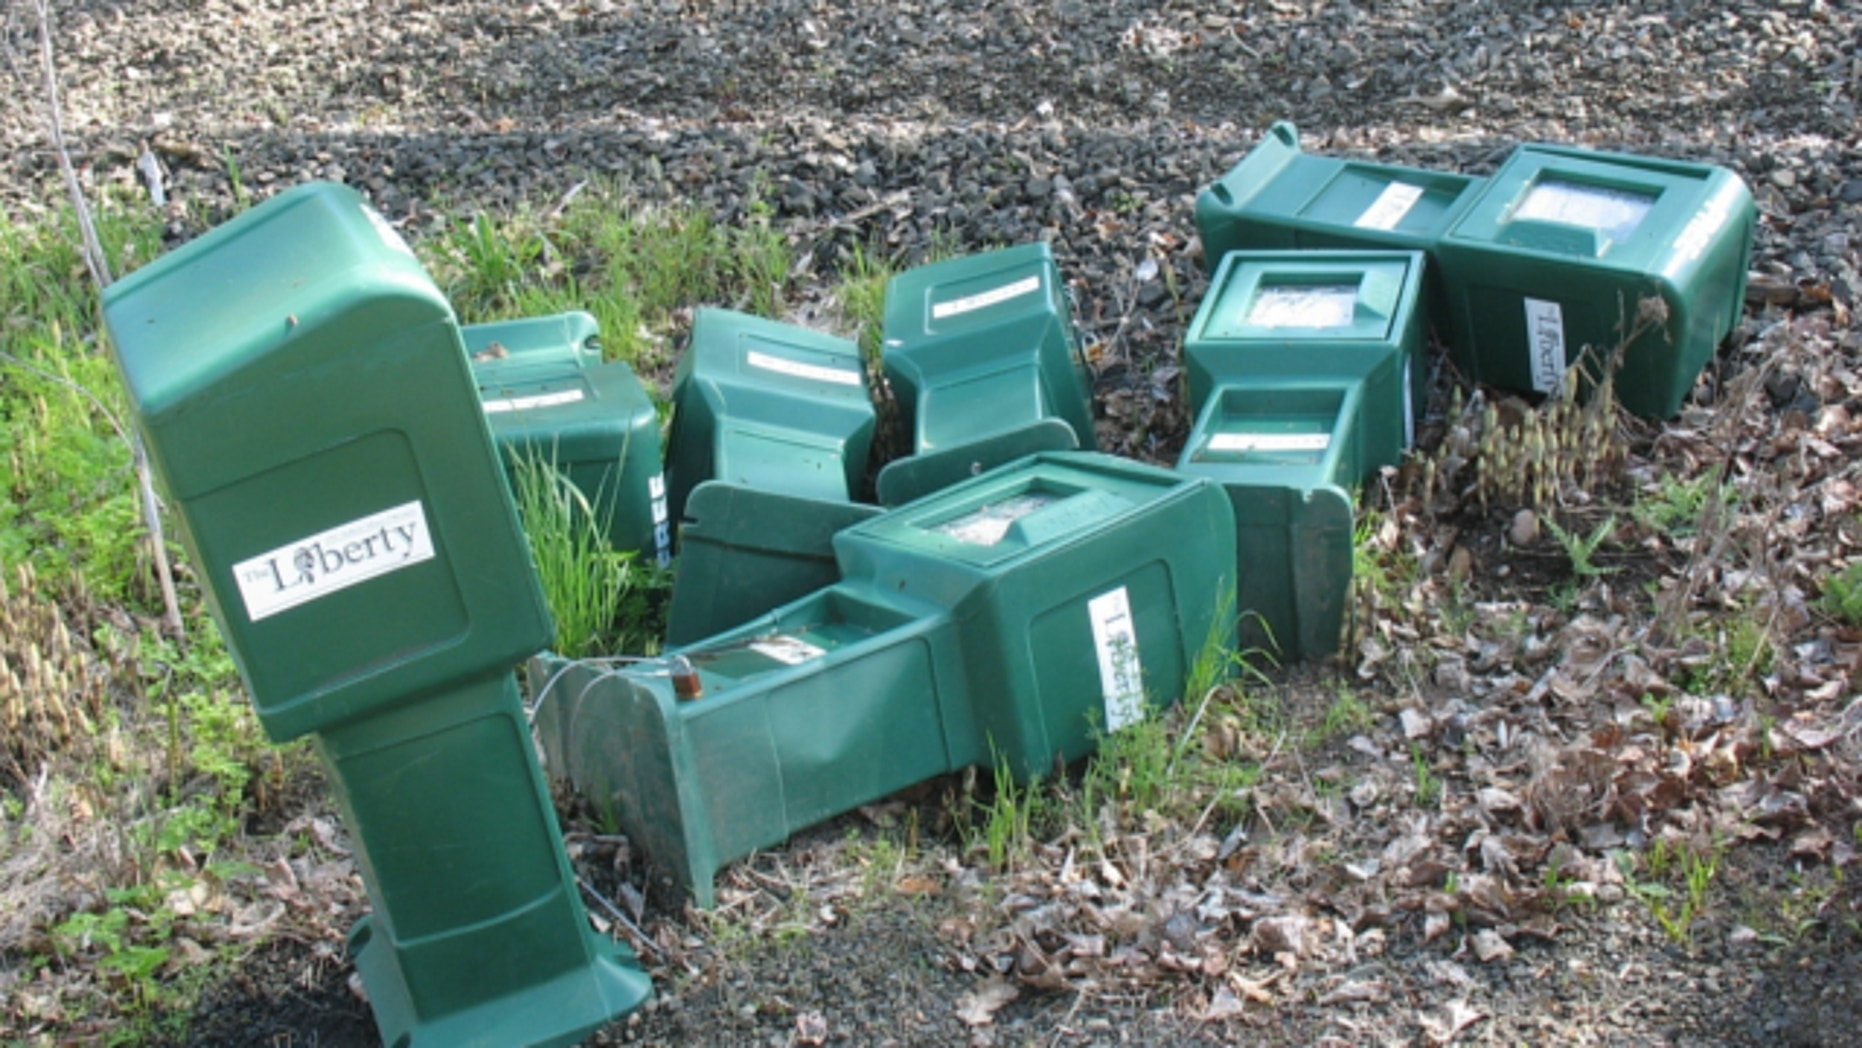 Supporters of the newspaper called The Liberty sued Oregon State in 2009, alleging the university president and other school officials granted the official campus newspaper numerous bins while trashing distribution boxes for The Liberty.